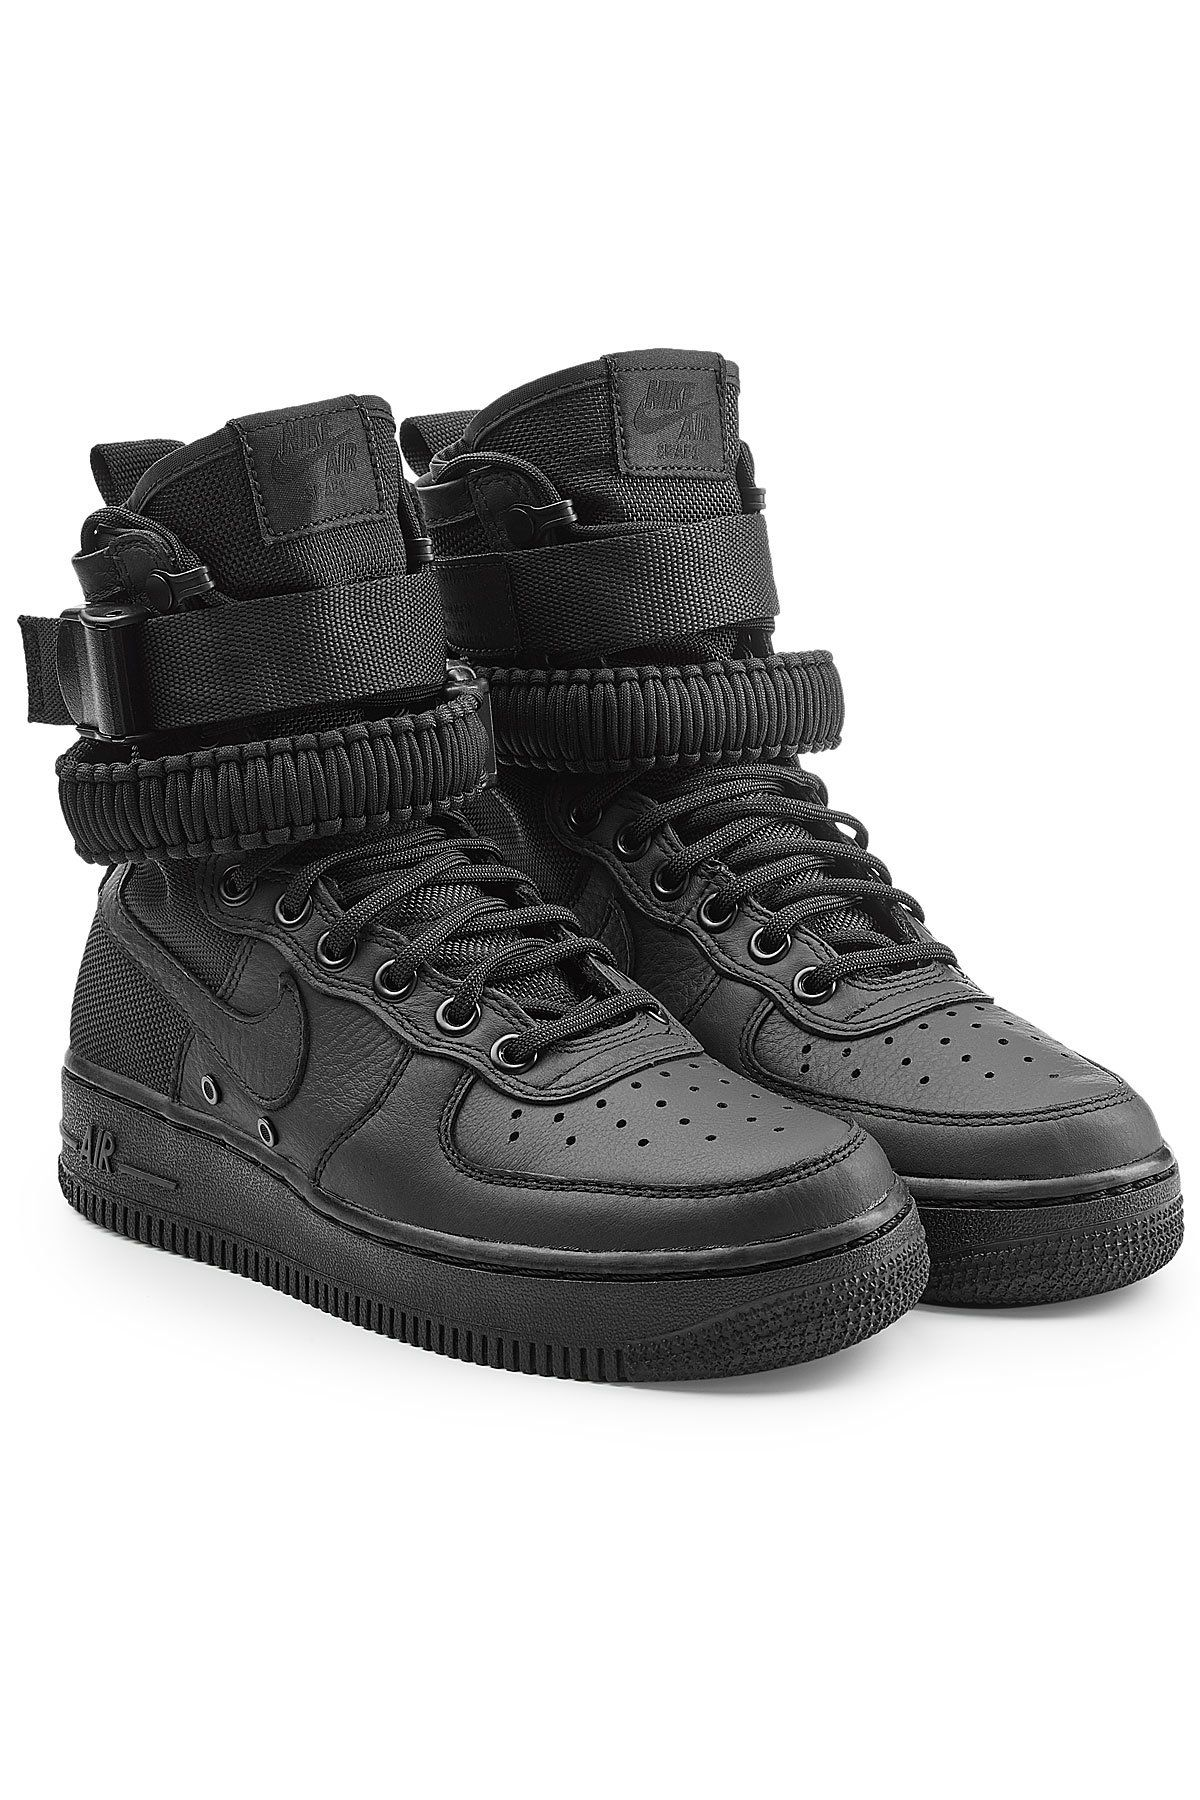 reputable site c5001 a5e82 NIKE SF AIR FORCE 1 HIGH TOP SNEAKERS WITH LEATHER.  nike  shoes